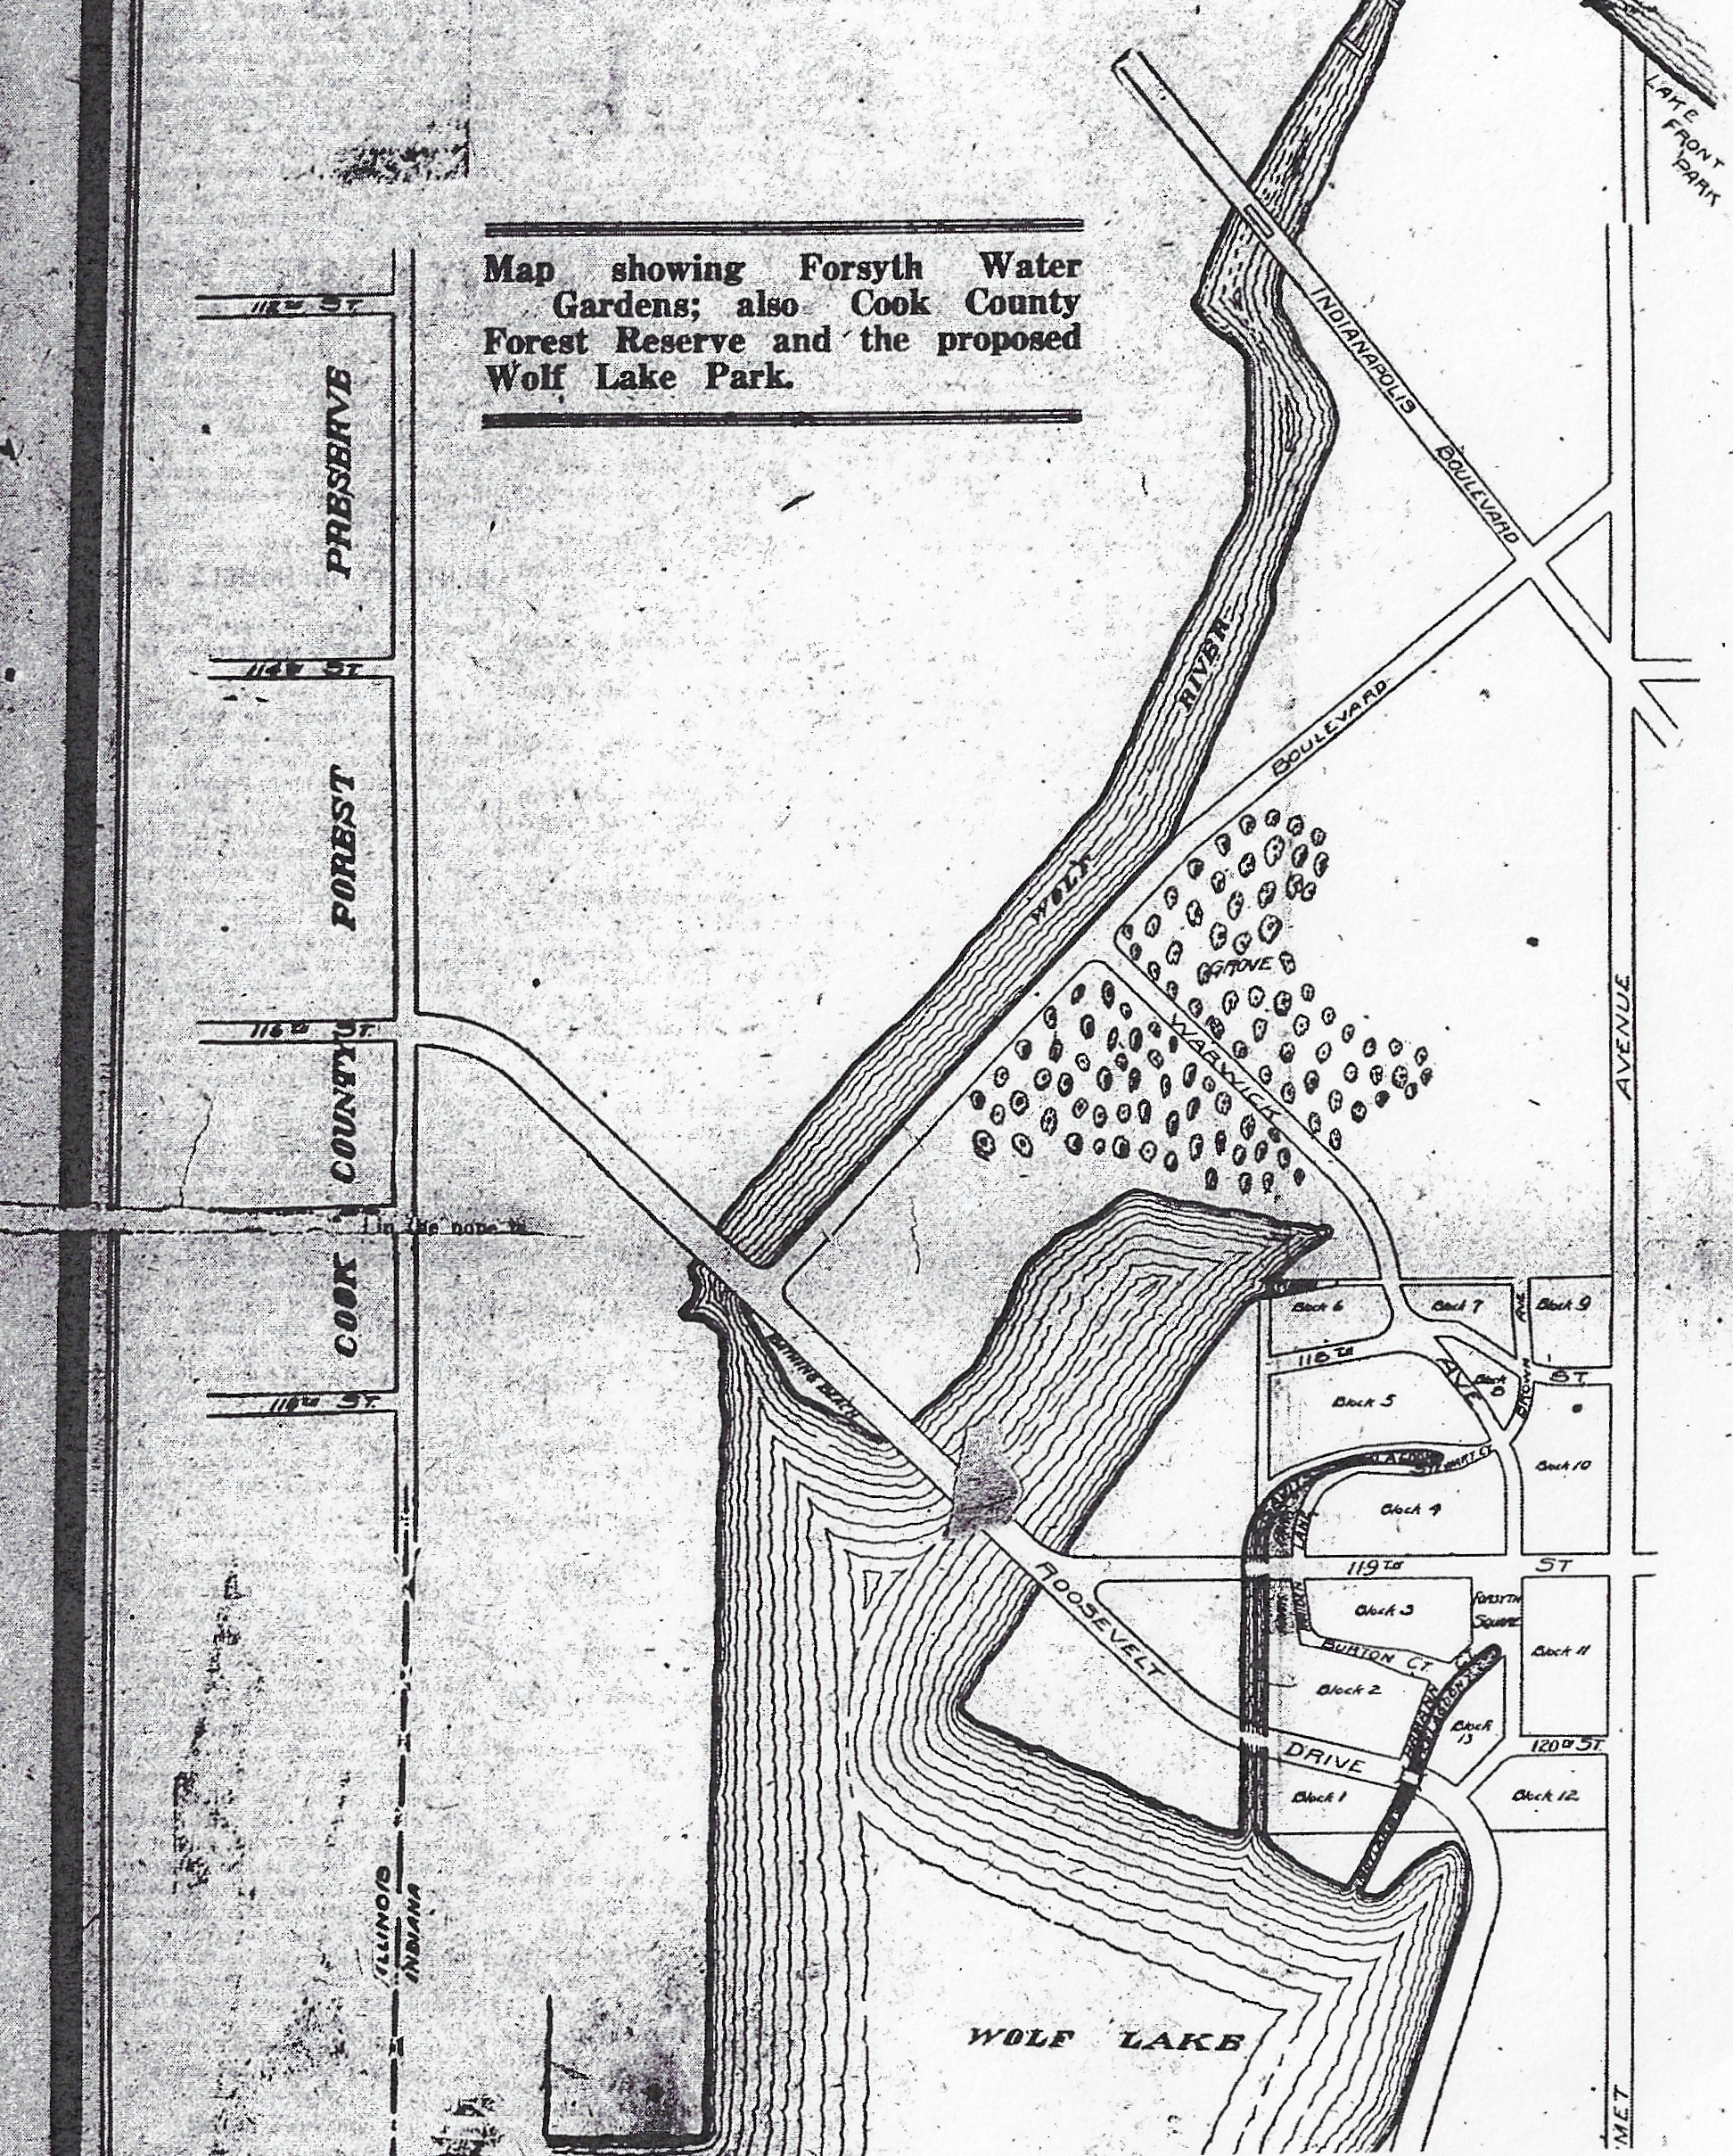 This map appeared in an 1920 ad placed by Henry S. Davidson to promote the Water Gardens. It shows his thoughts on Roosevelt Drive crossing Wolf Lake and connecting with 116th Street in Chicago. It also shows the Water Gardens as the only development on the west side of Calumet Avenue.